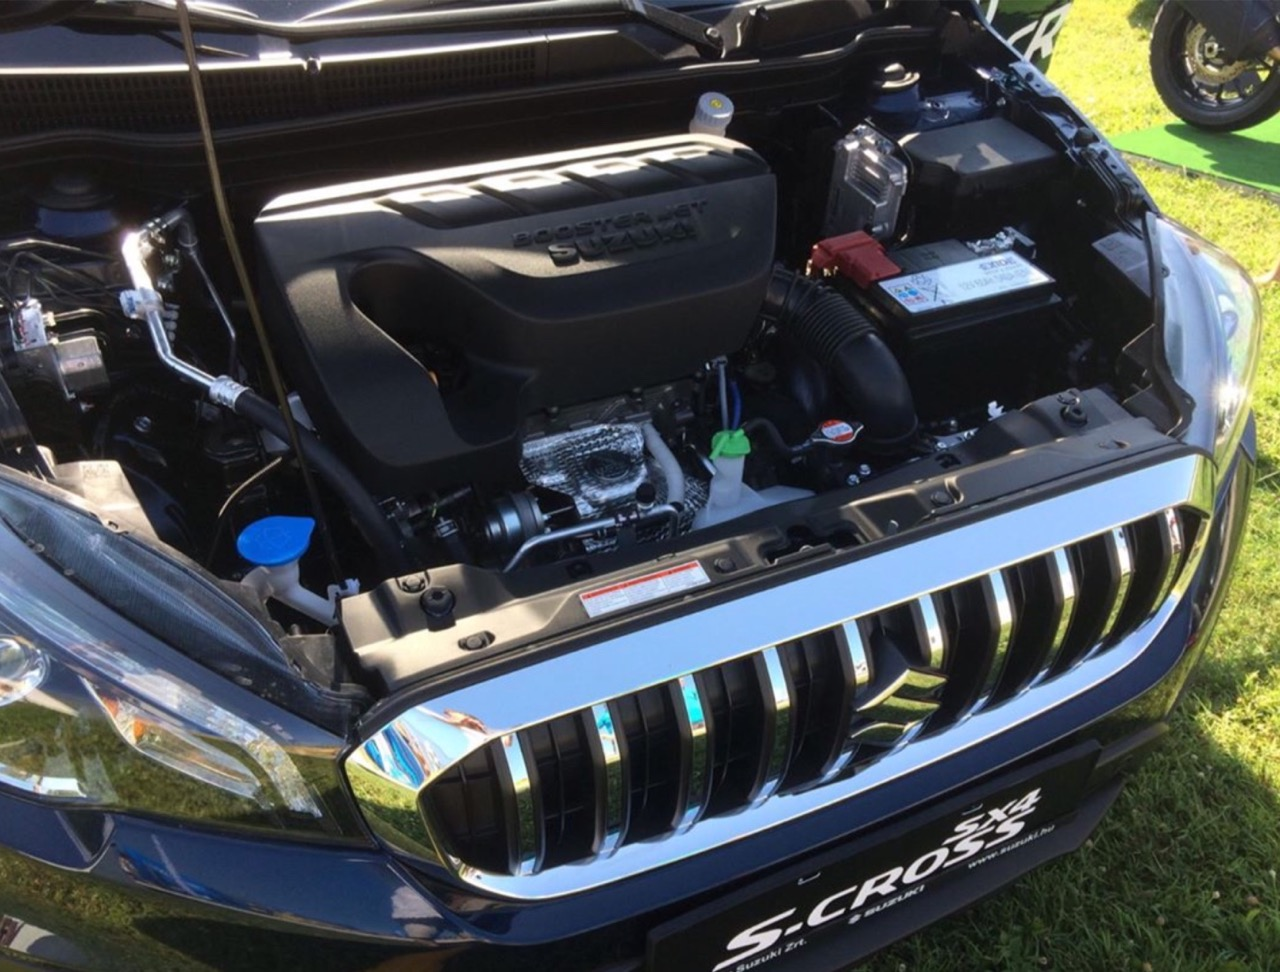 Suzuki S-Cross facelift engine bay photographed